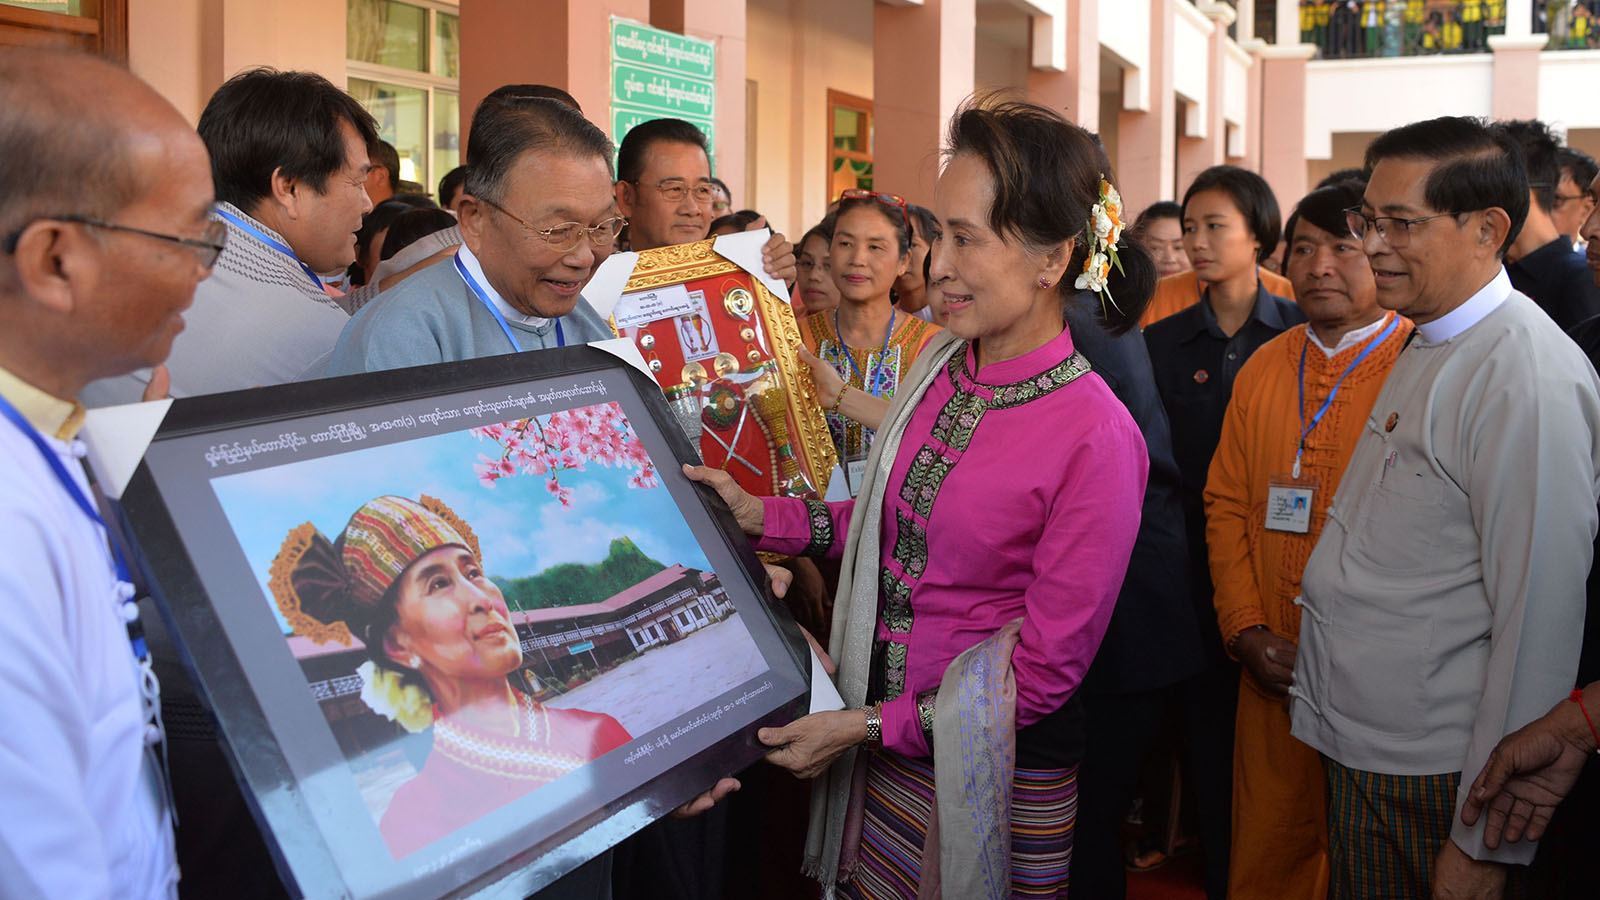 State Counsellor Daw Aung San Suu Kyi receives her portrait painting at No.1 High School in Taunggyi.Photo: MNA